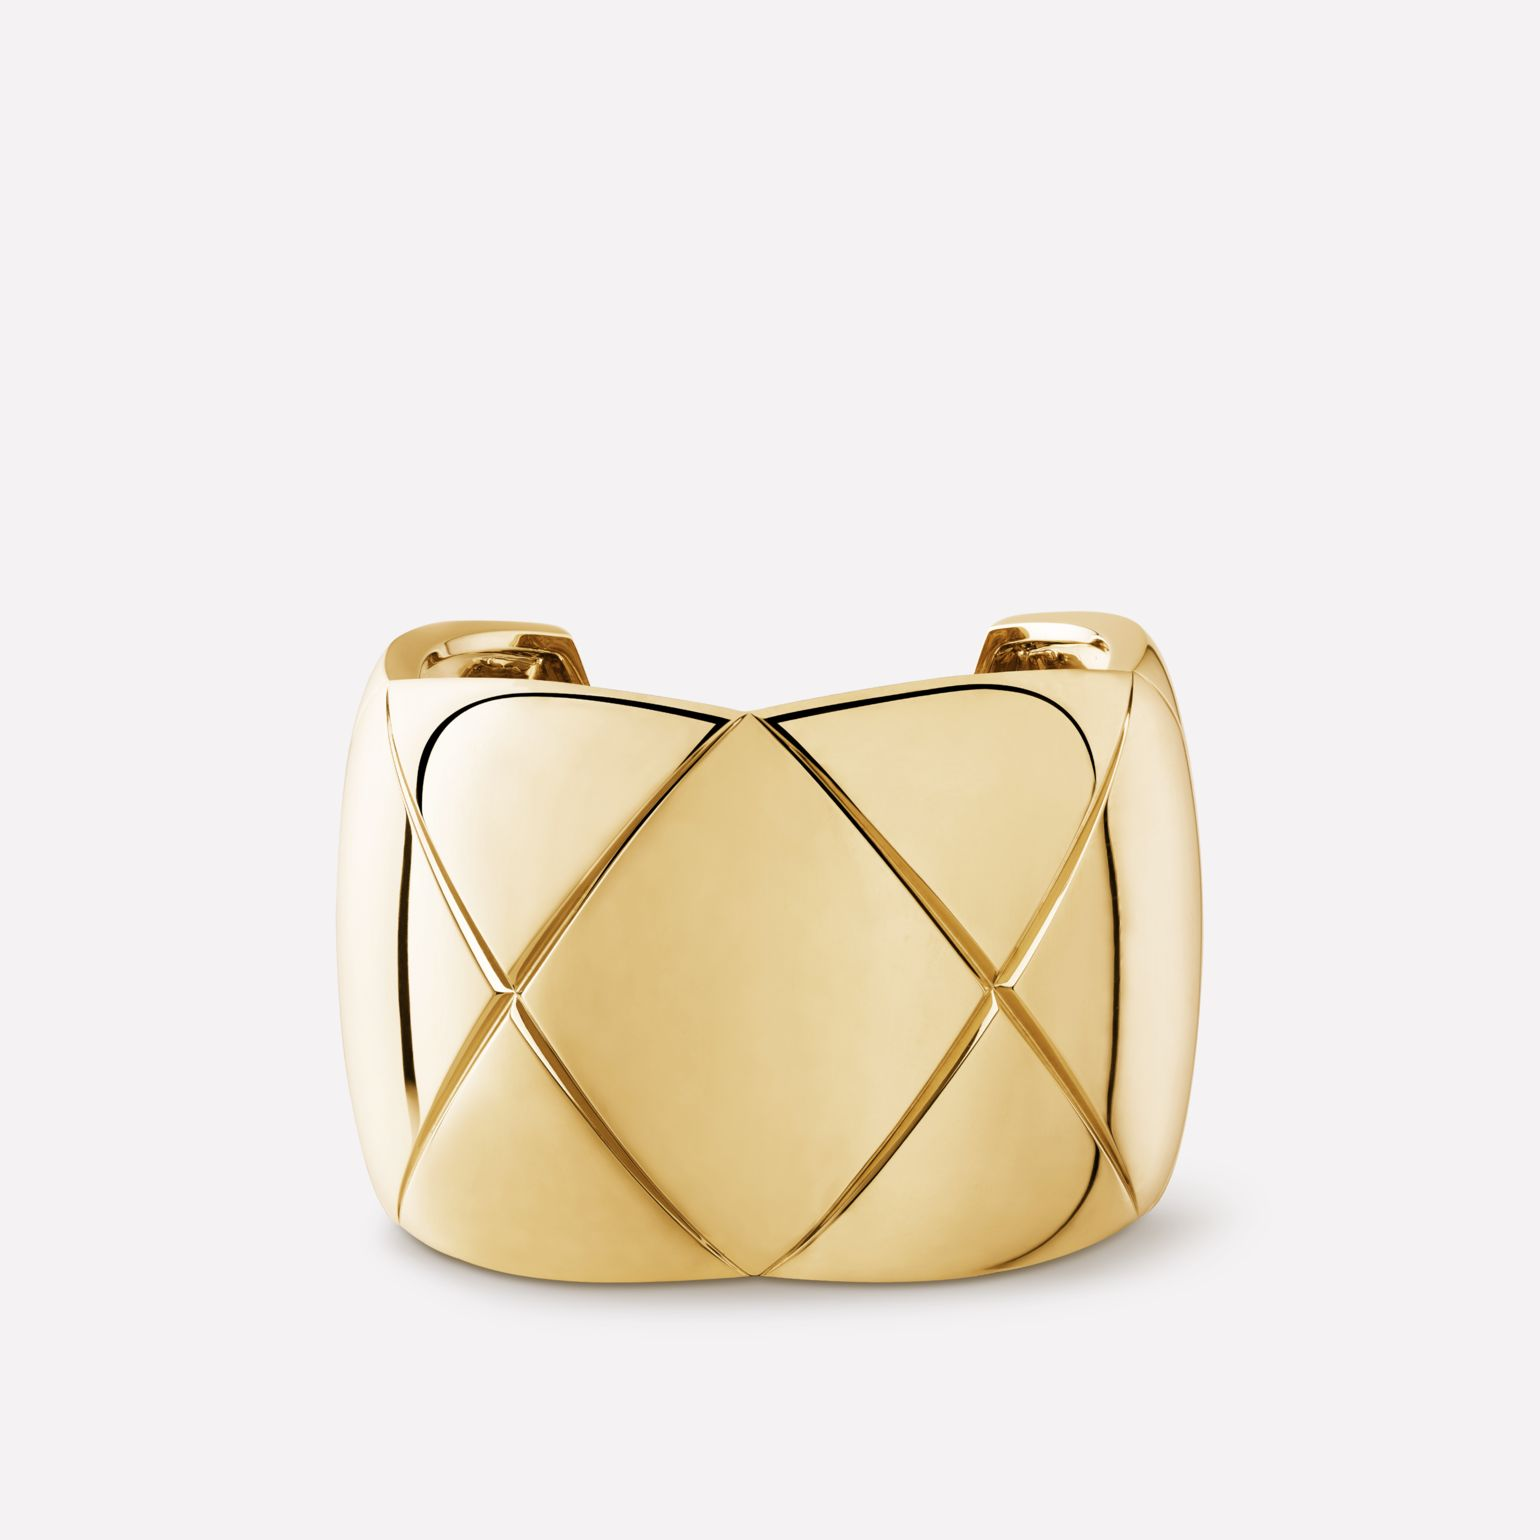 Coco Crush Bracelet Quilted motif cuff in 18K yellow gold